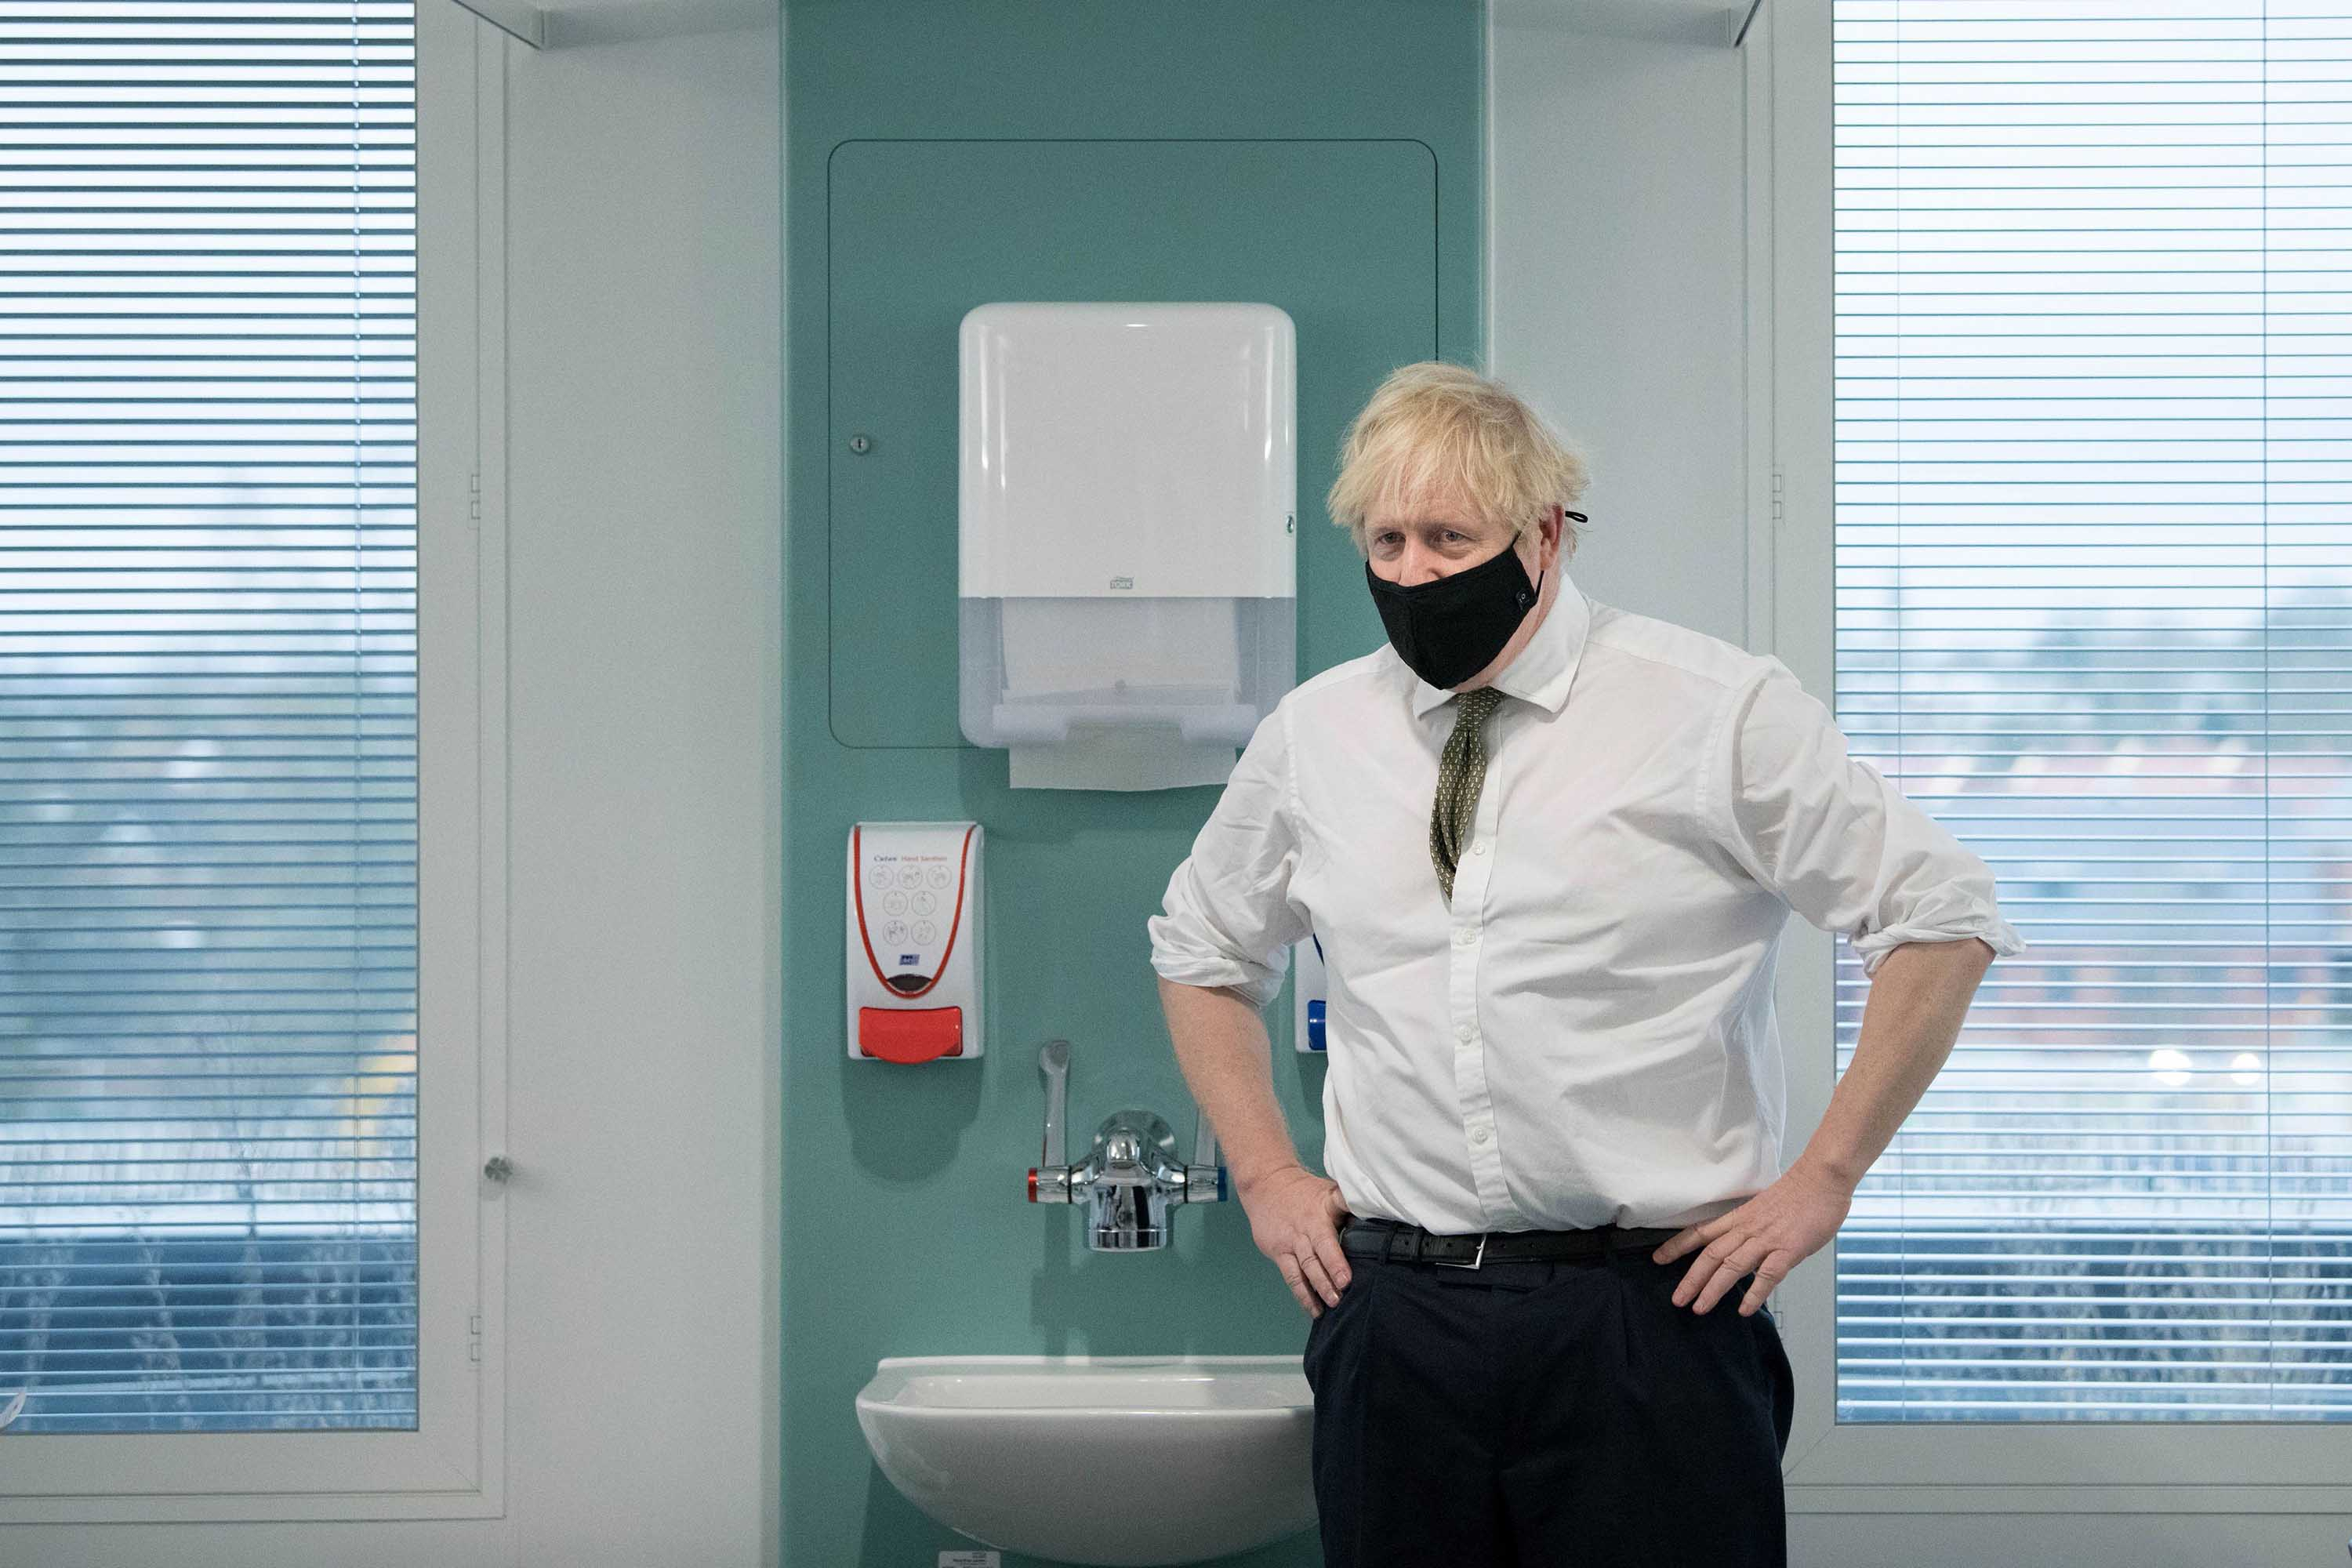 British Prime Minister Boris Johnson speaks to staff during a visit to London's Chase Farm Hospital on January 4, during the rollout of the newly approved AstraZeneca/Oxford Covid-19 vaccine.